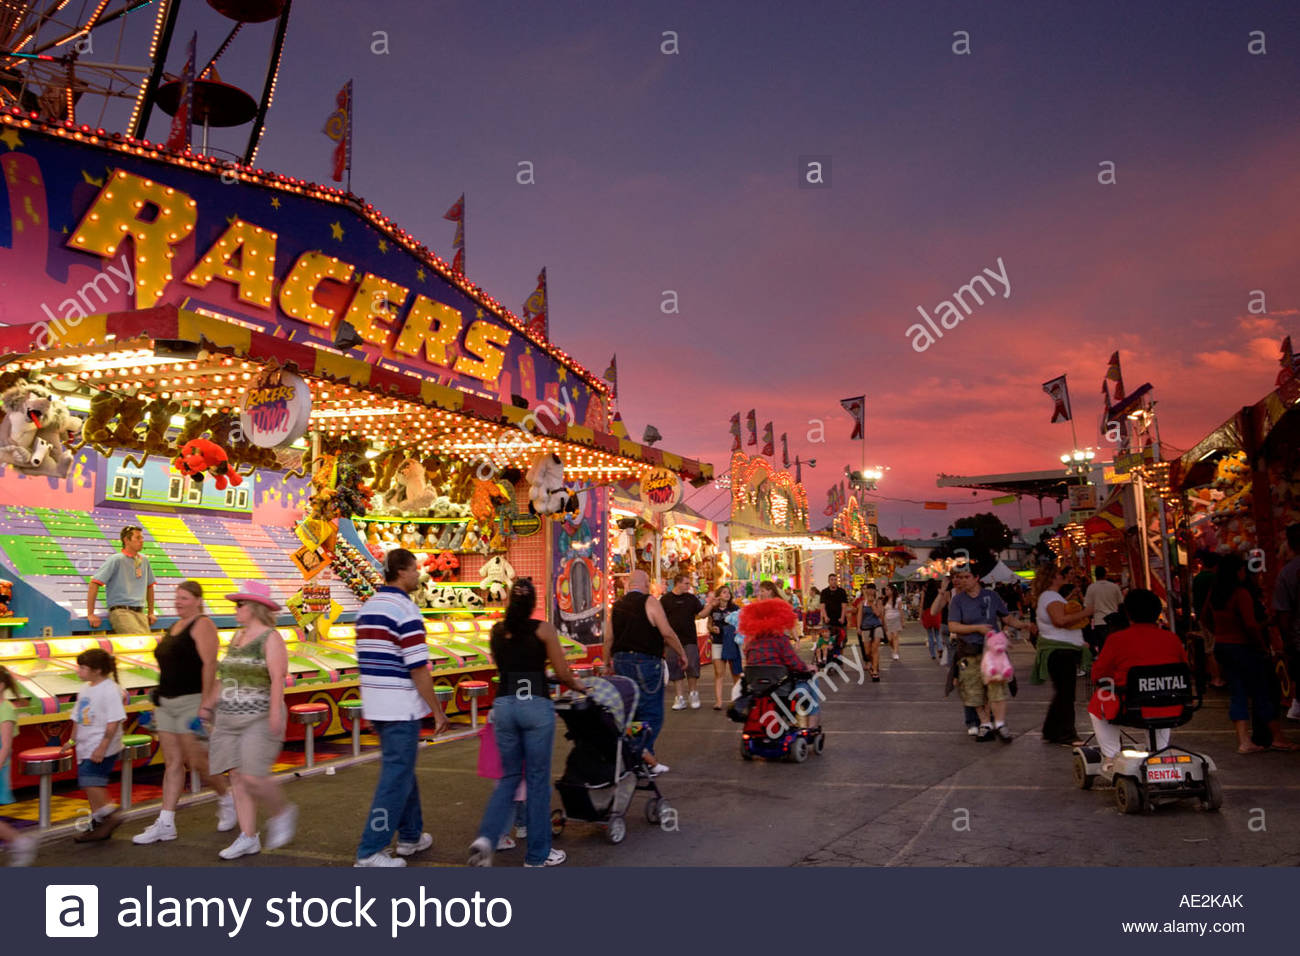 Carnival Games Midway at the Los Angeles County Fair Pomona California - Stock Image